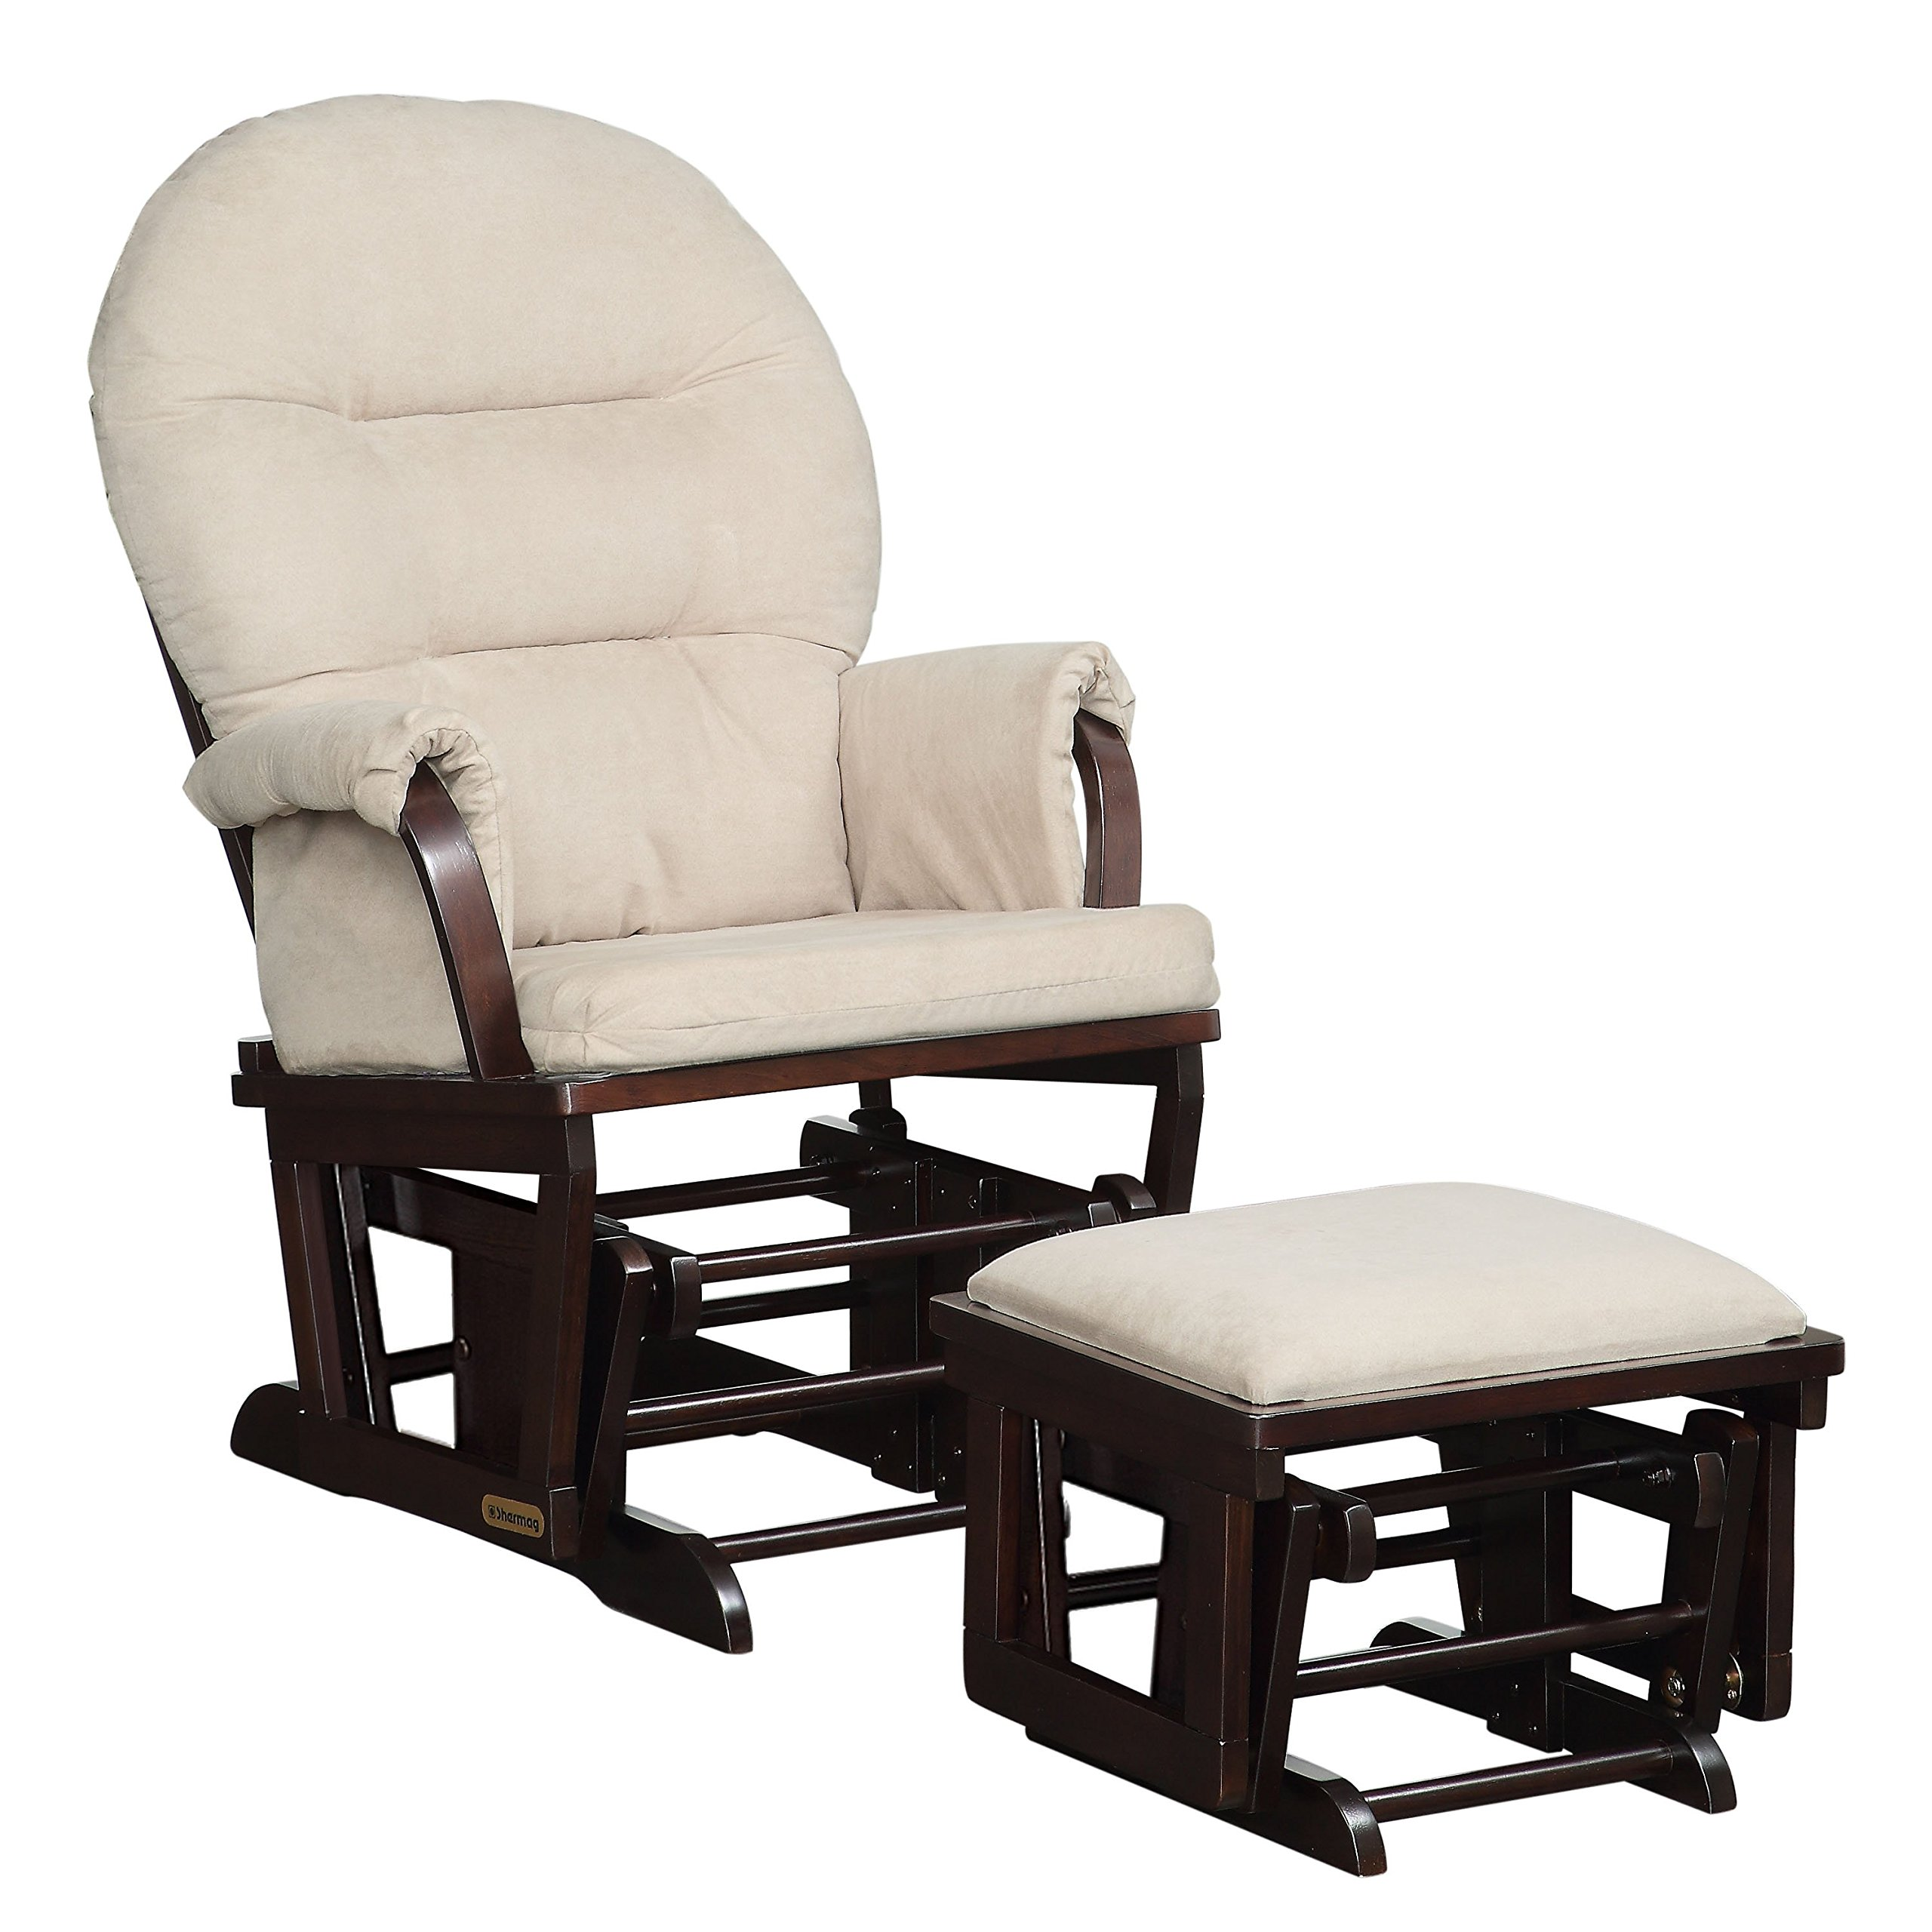 Lennox Contemporary Style Glider Chair and Ottoman Combo, Espresso with Pearl Beige by Lennox Furniture